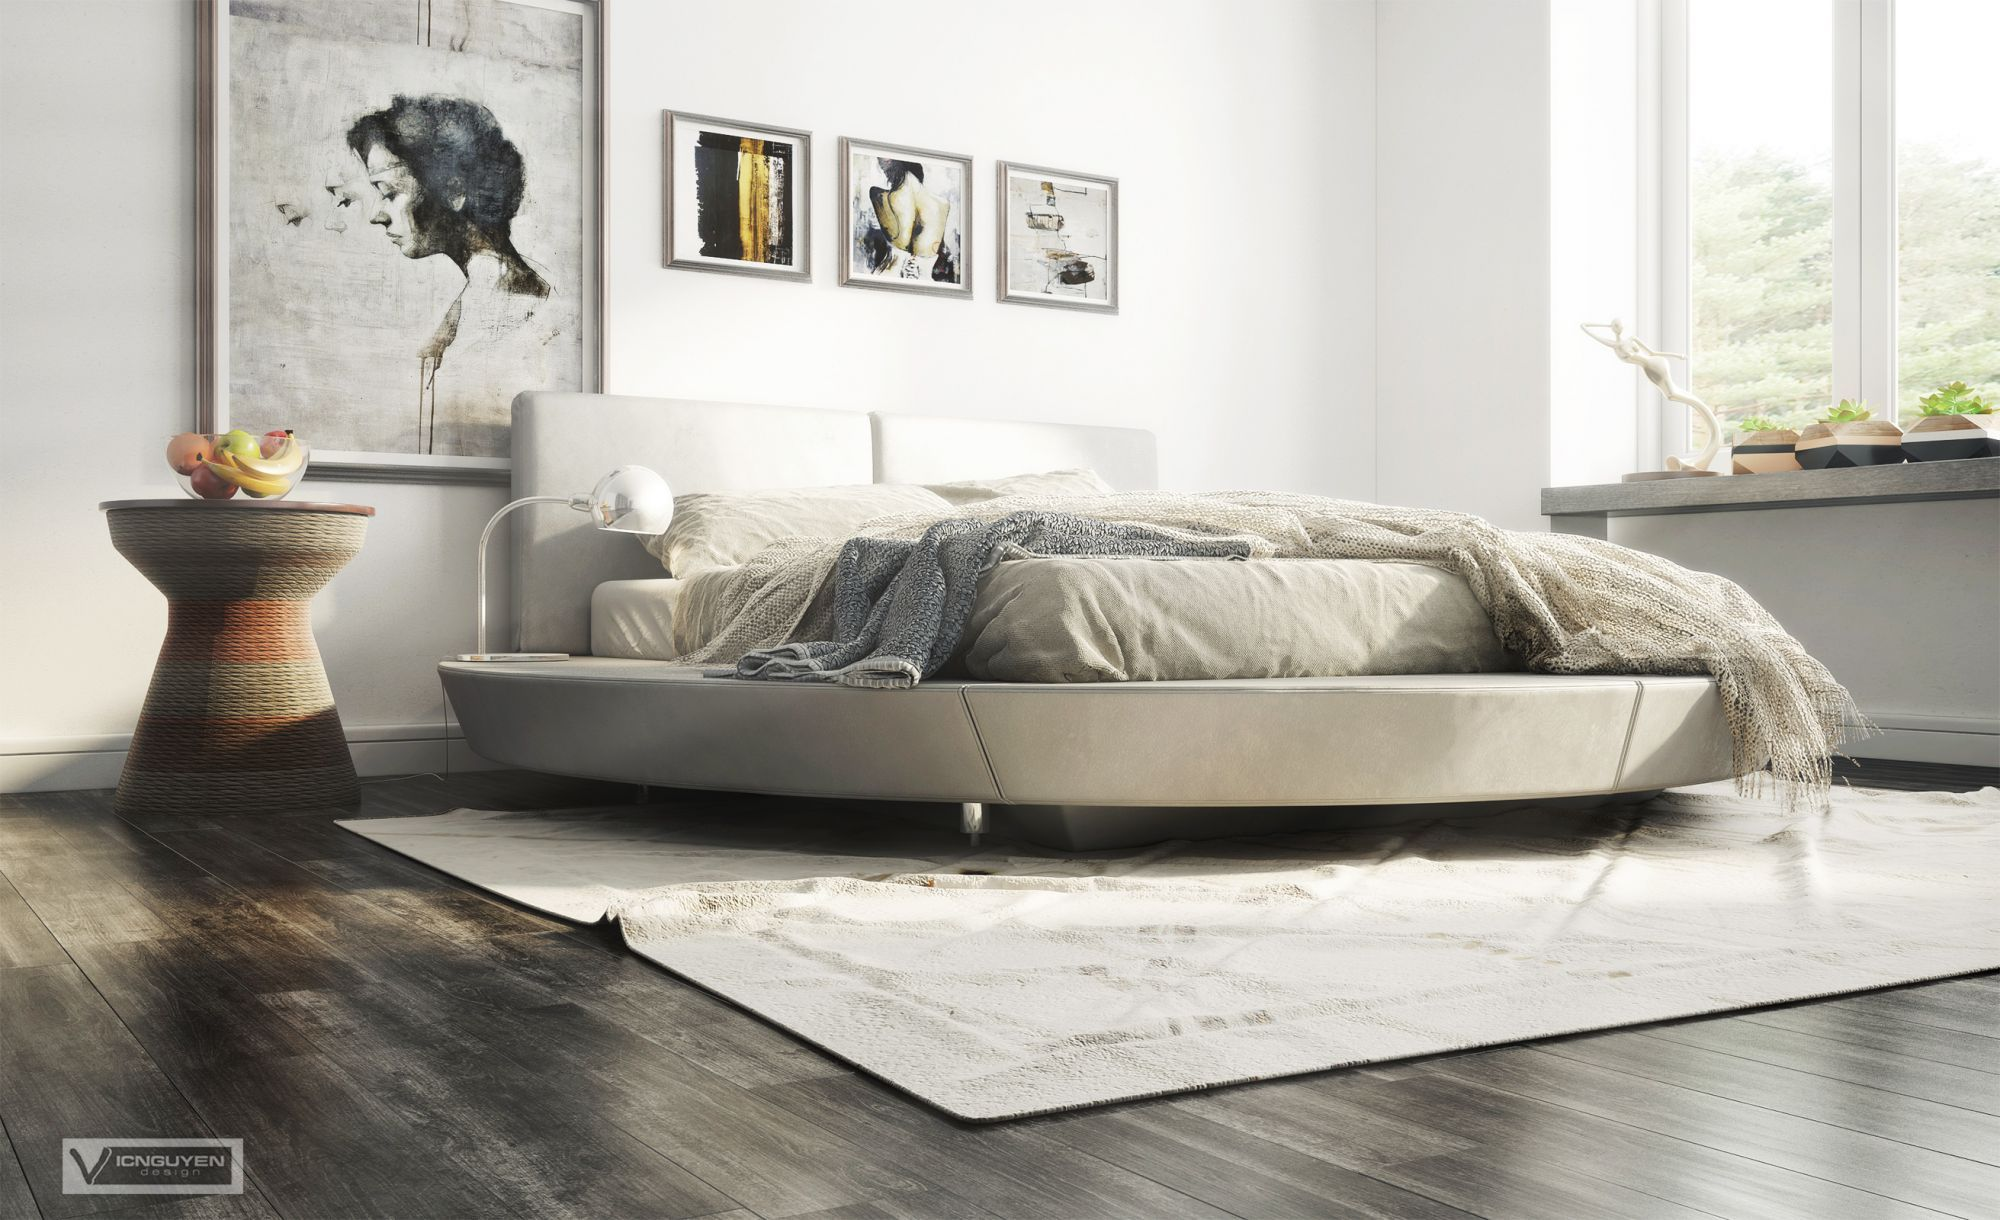 CGarchitect - Professional 3D Architectural Visualization User Community | bedroom.v002